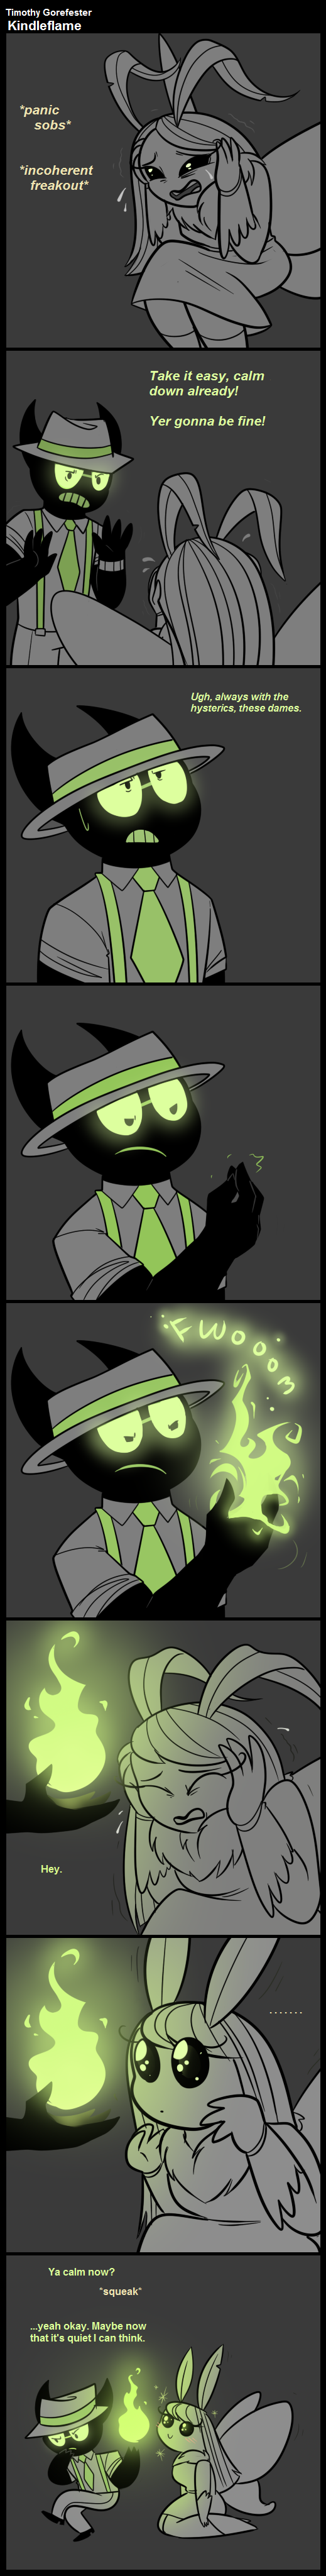 TGf Comic - Kindleflame by blinkpen